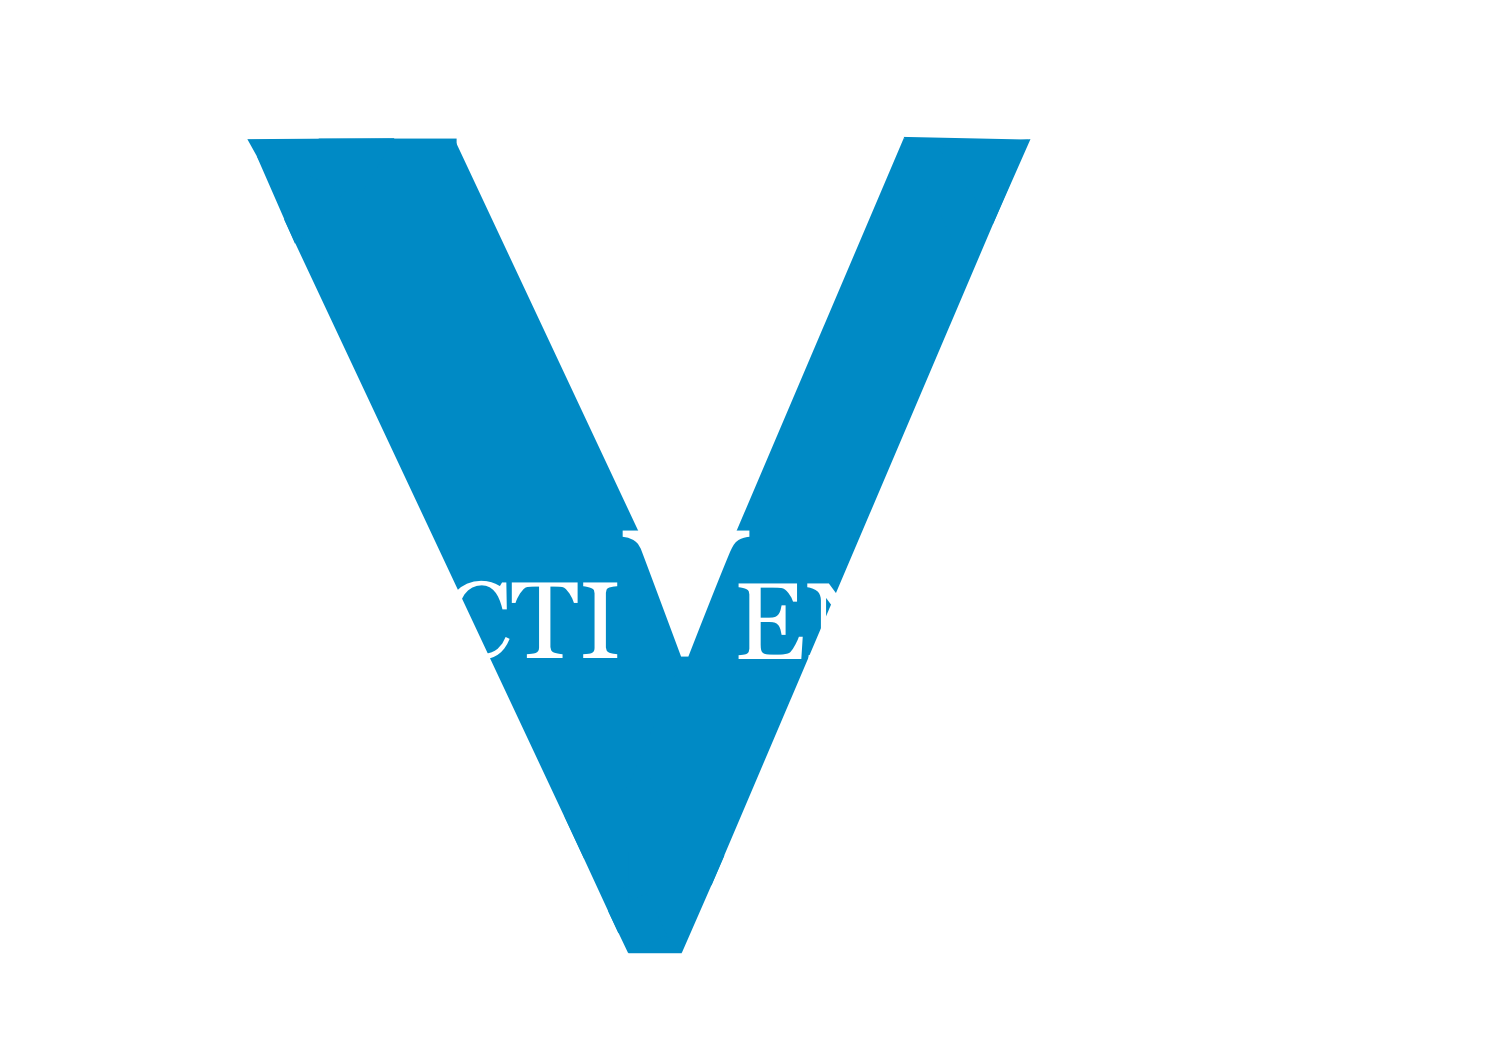 Activenture - Activating Sport Adventures